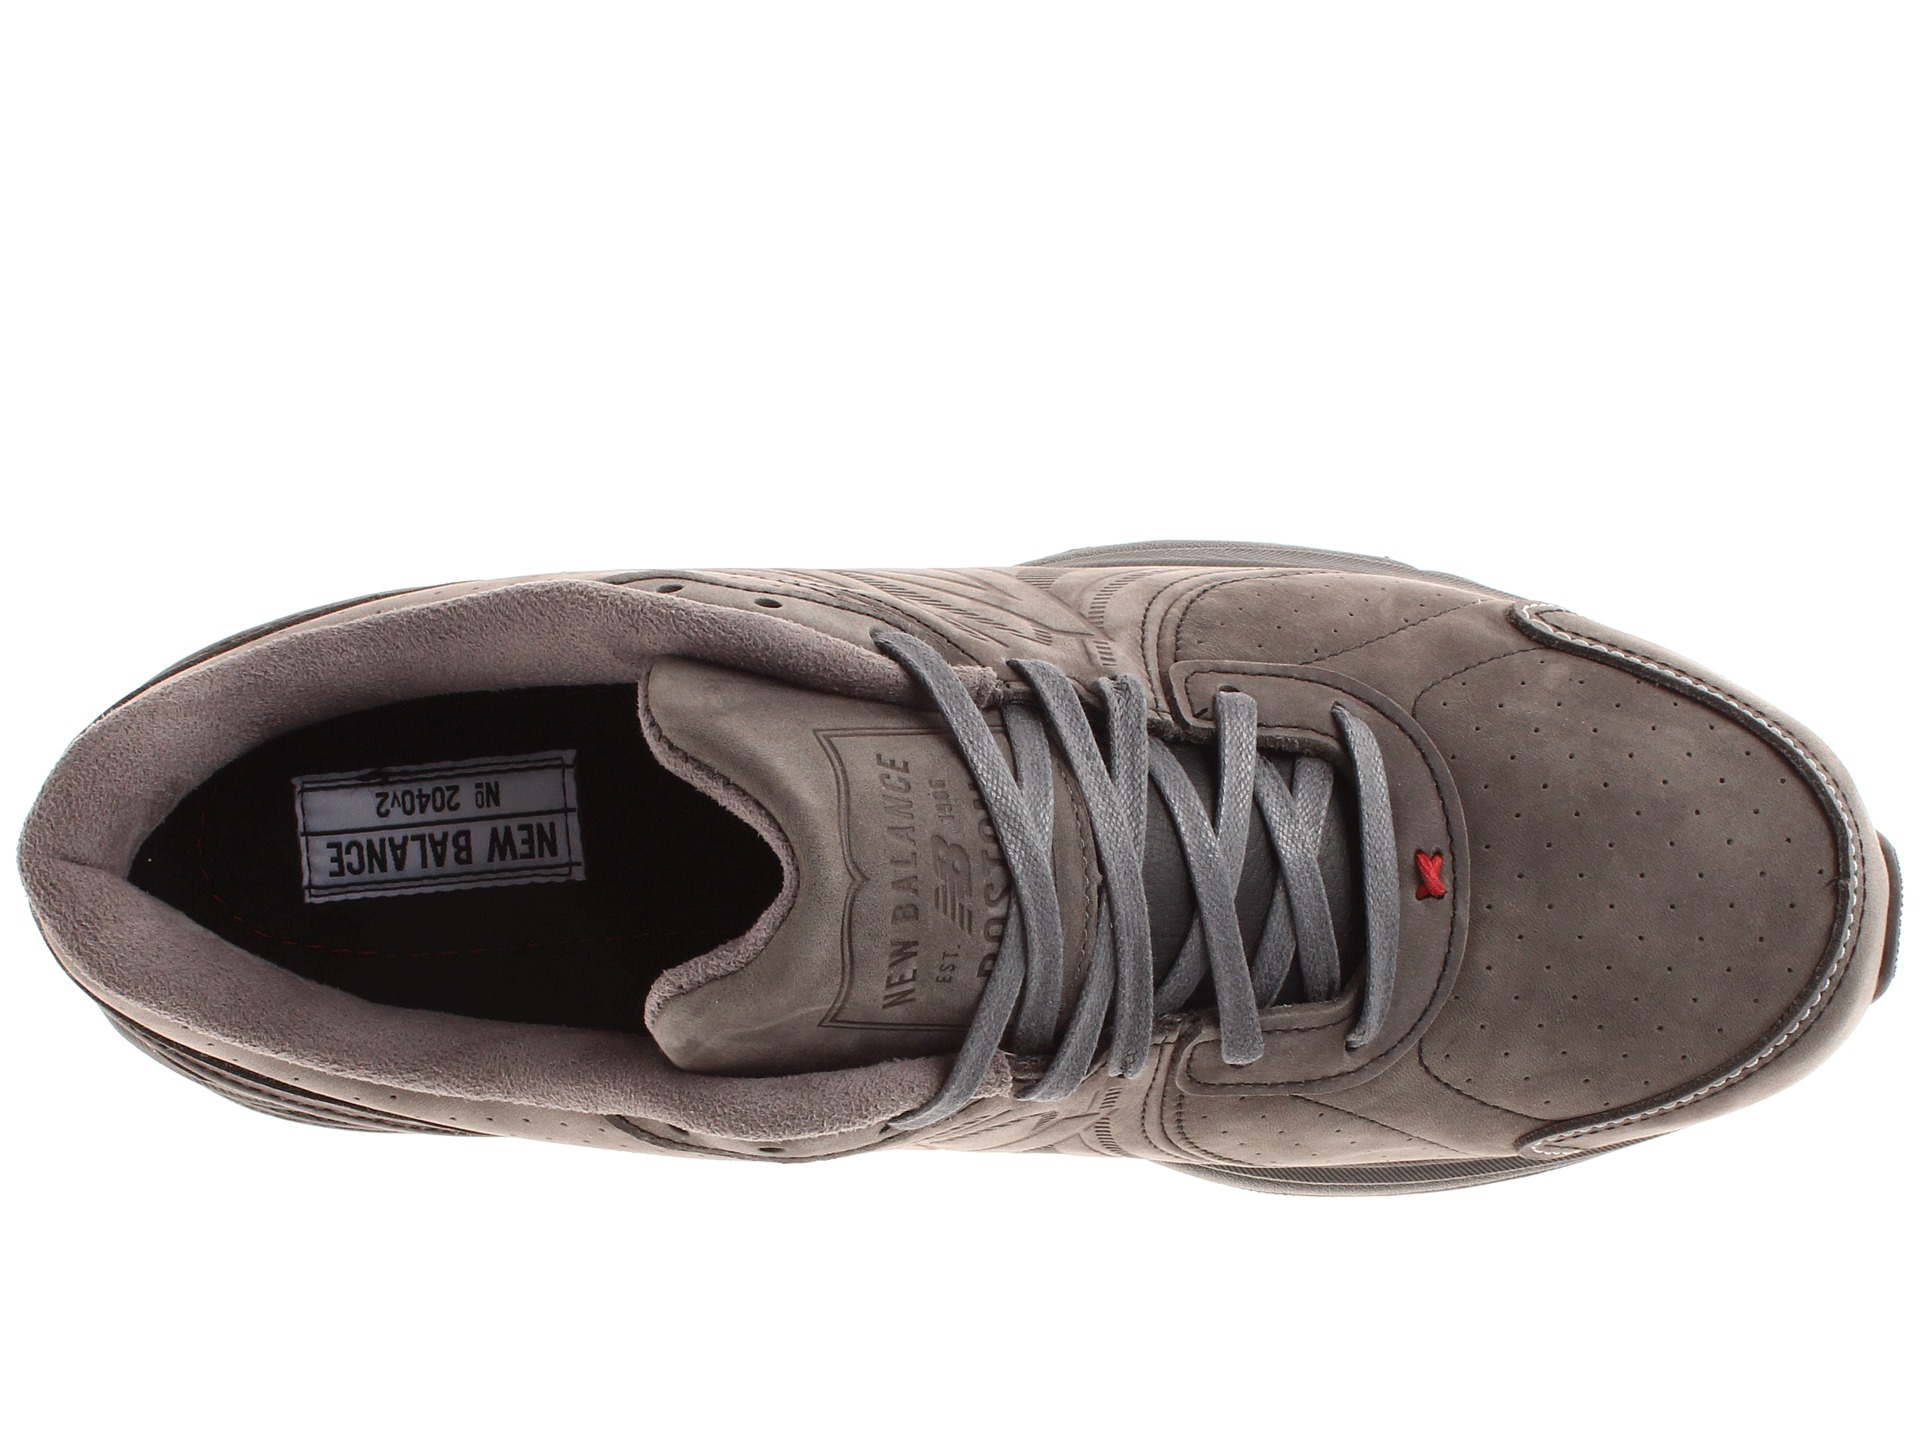 New Balance M2040 Dark Grey SP14 Zapposcom Free